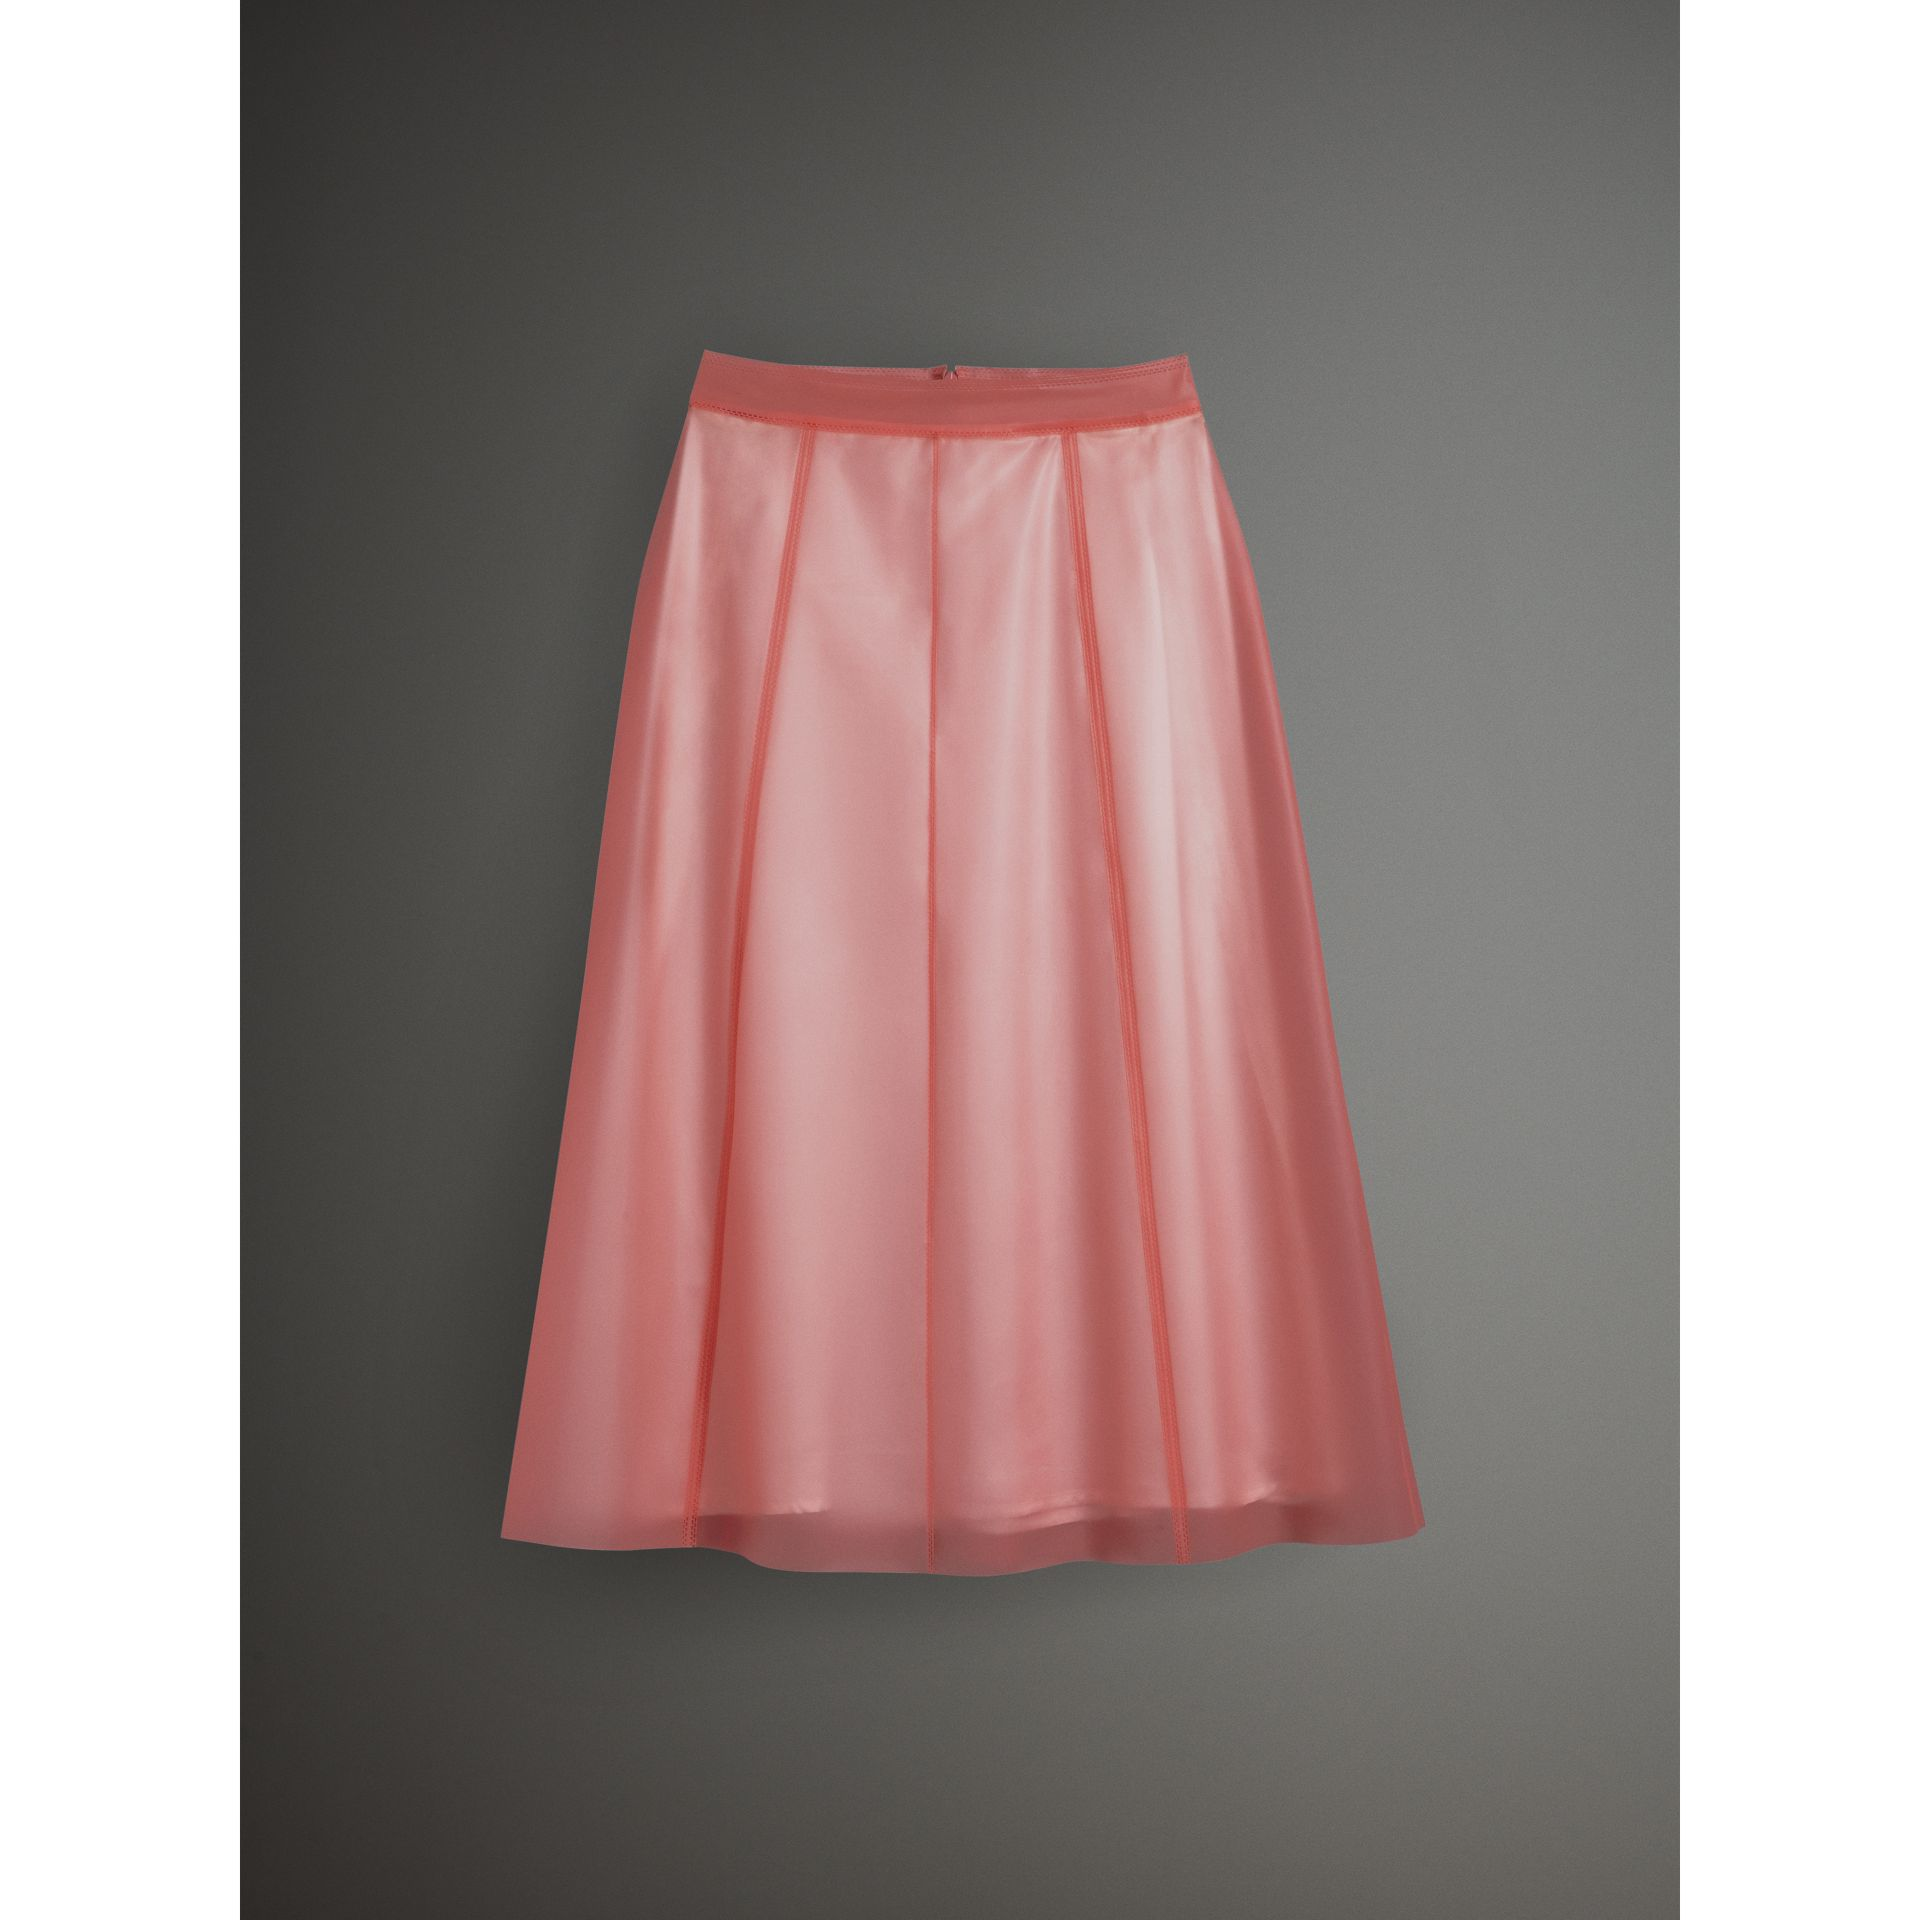 Silk-lined Plastic A-line Skirt in Rose Pink - Women | Burberry Singapore - gallery image 3